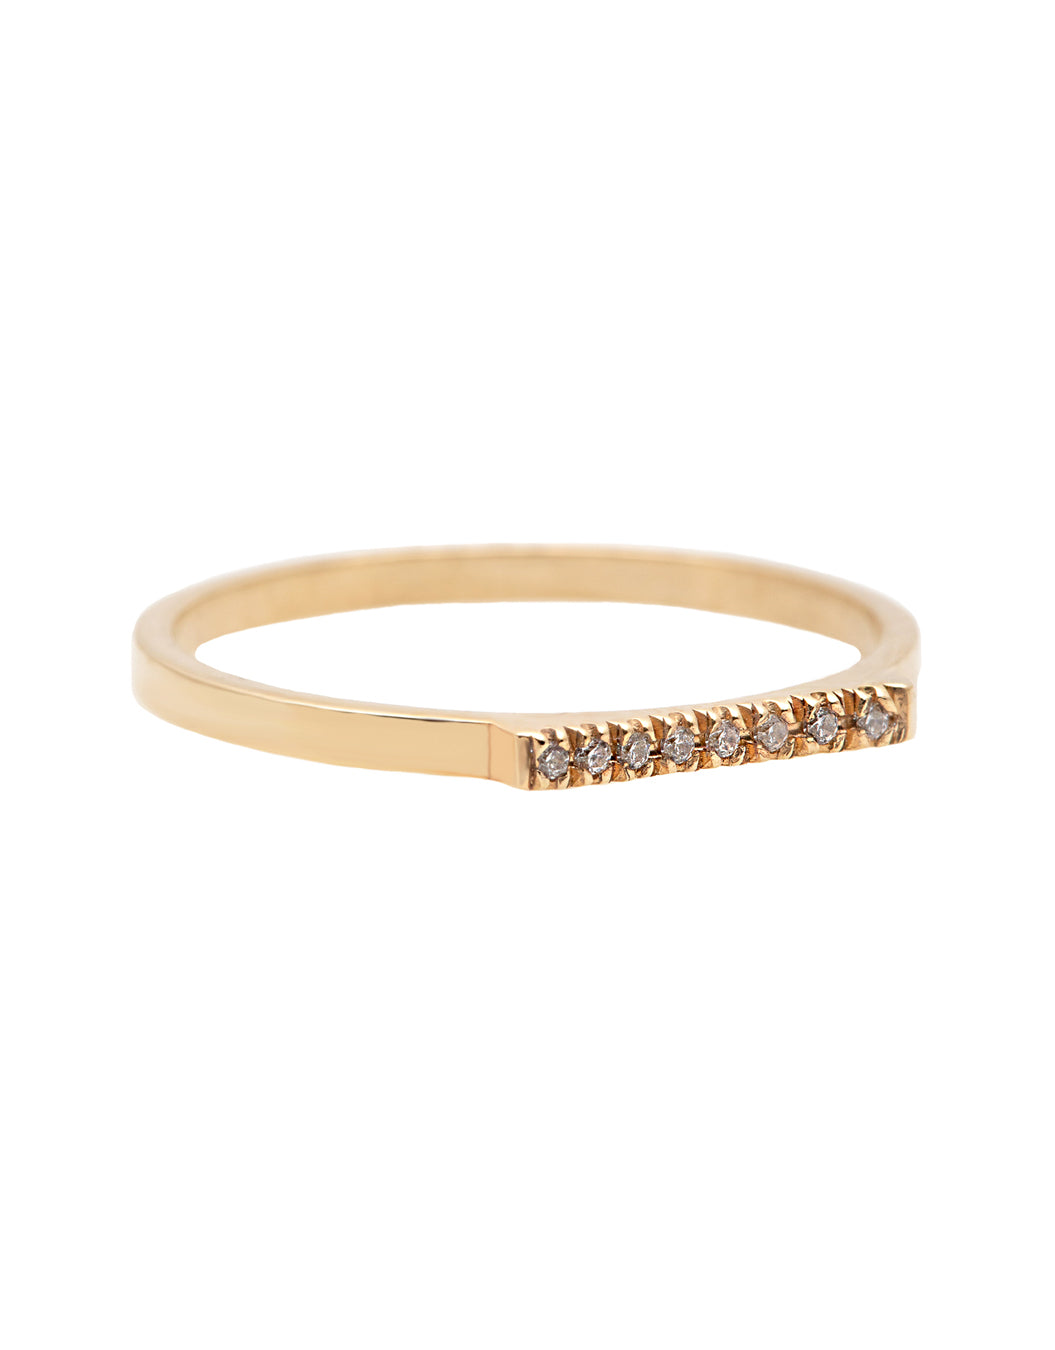 A delicate 14k yellow gold ring with a flat top set nine brilliant cut white diamonds, 0.01 carat each.